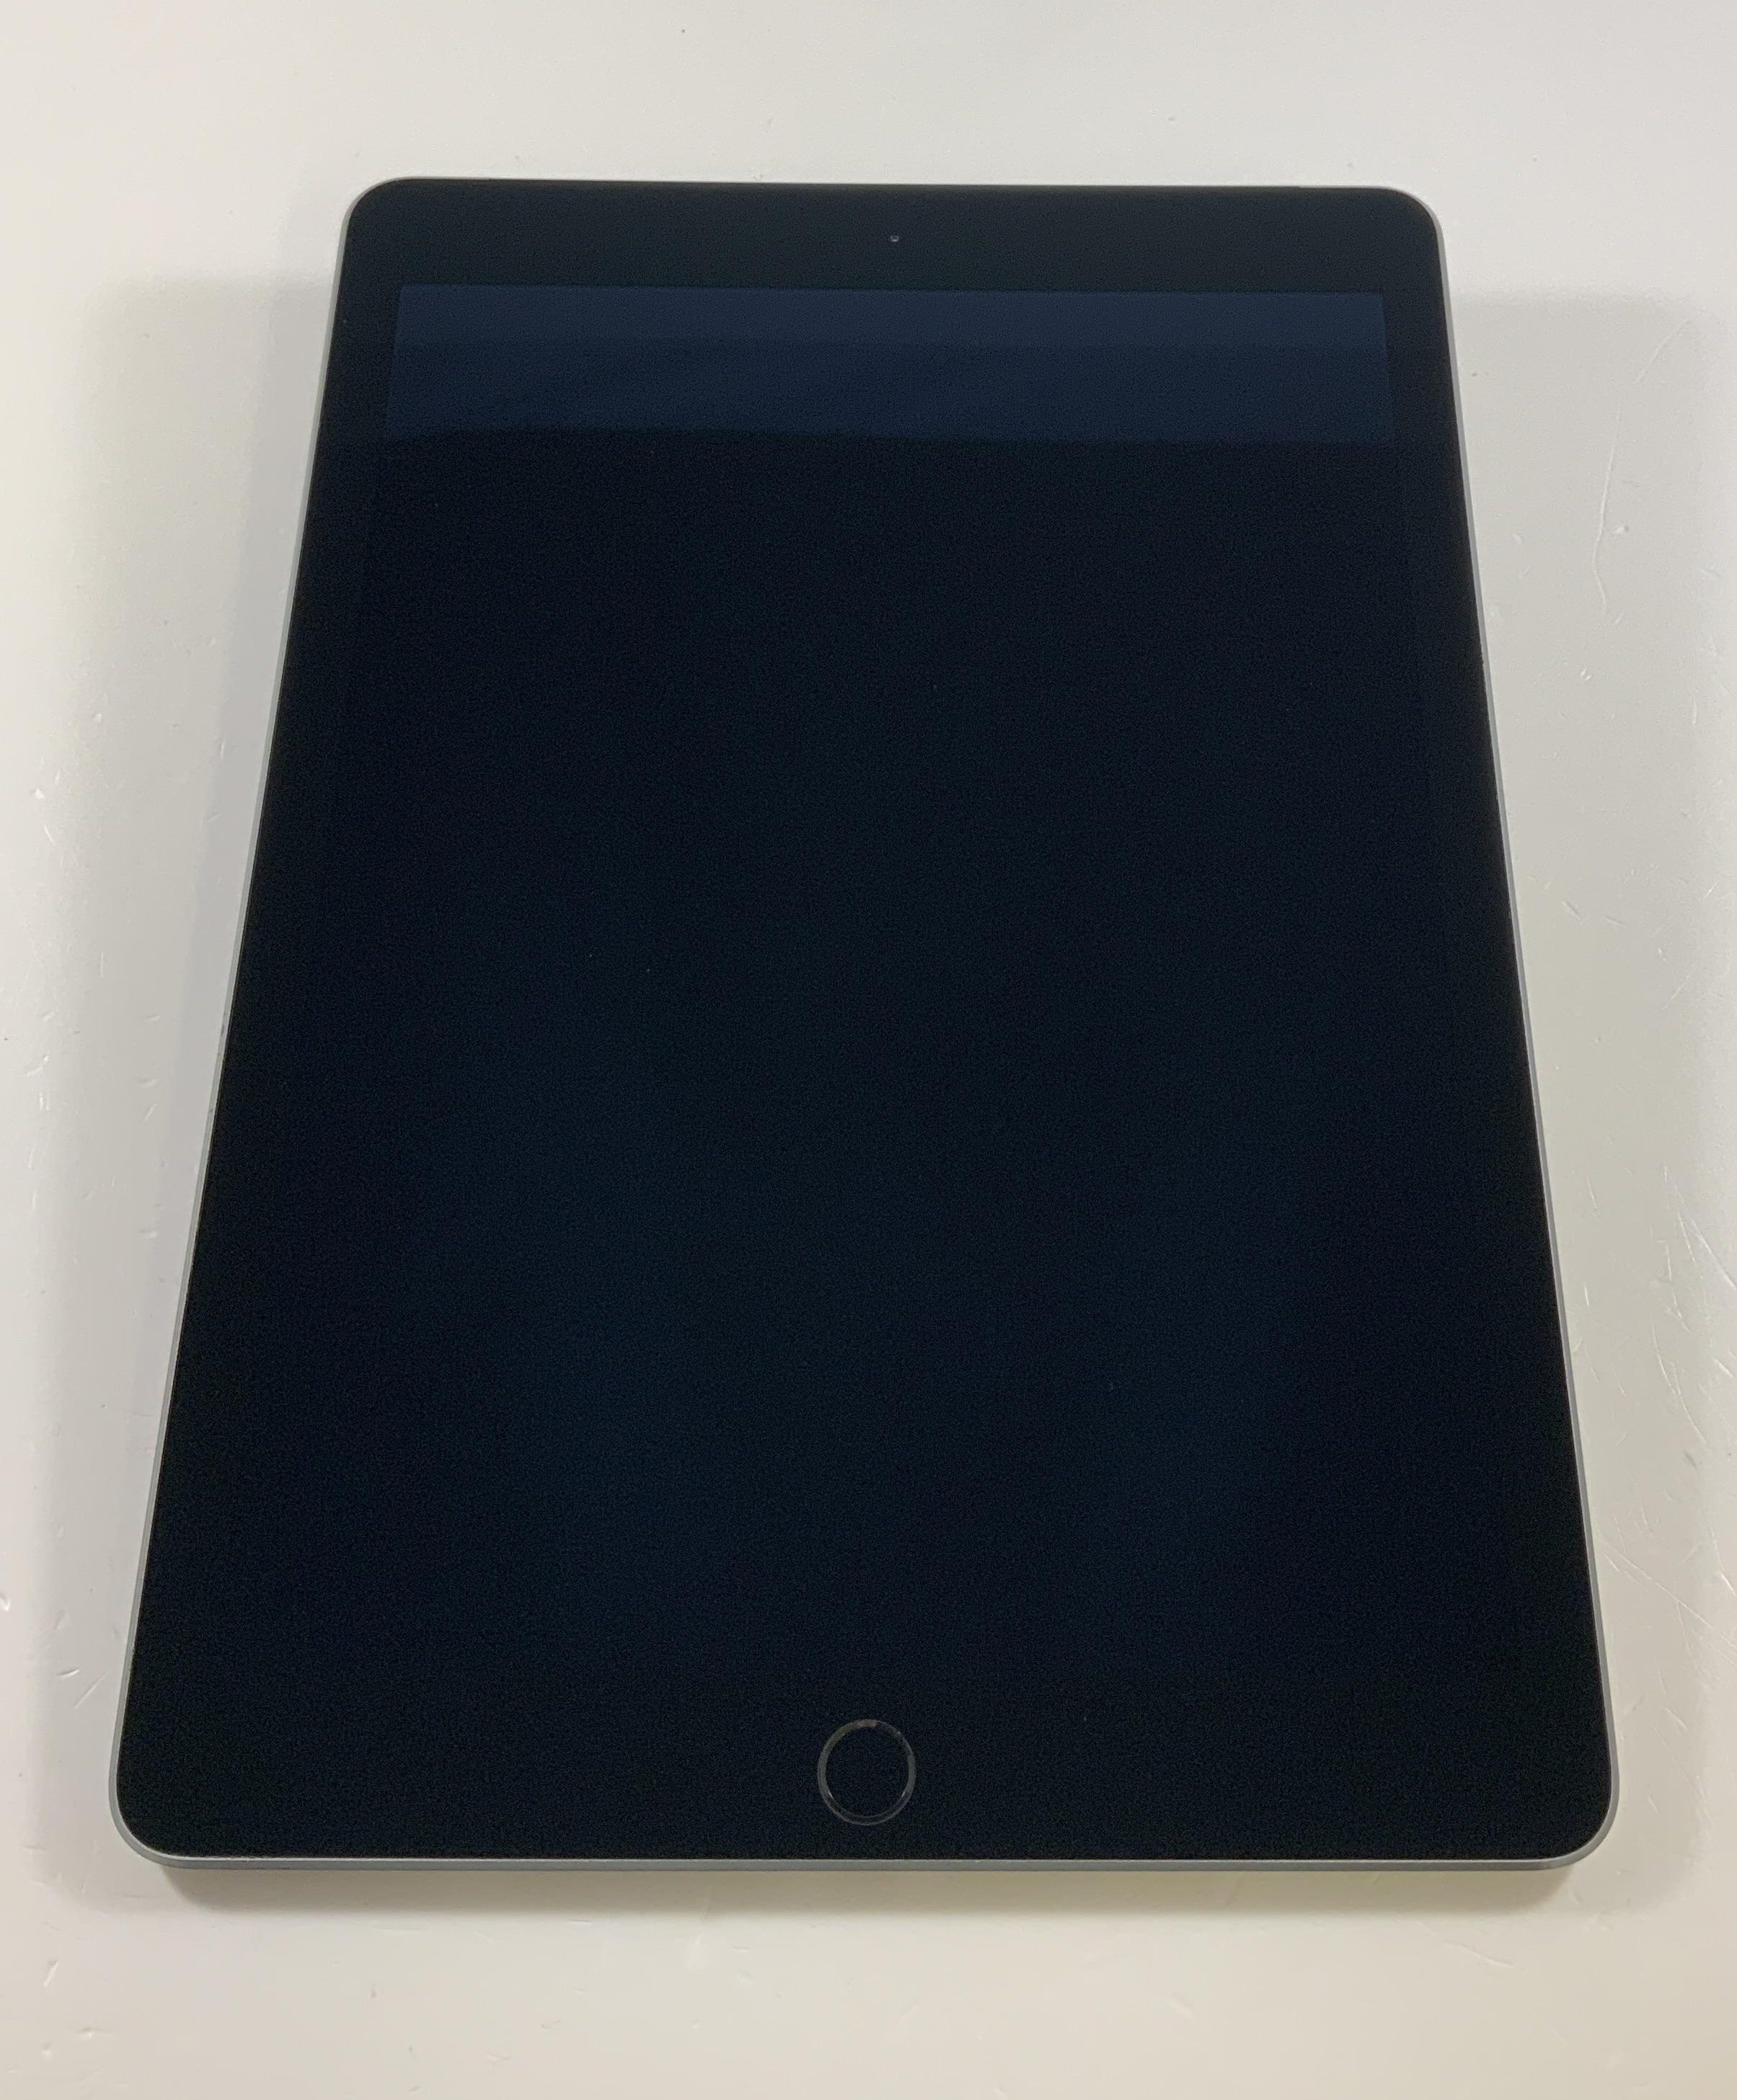 iPad Air 2 Wi-Fi + Cellular 64GB, 64GB, Space Gray, Kuva 1